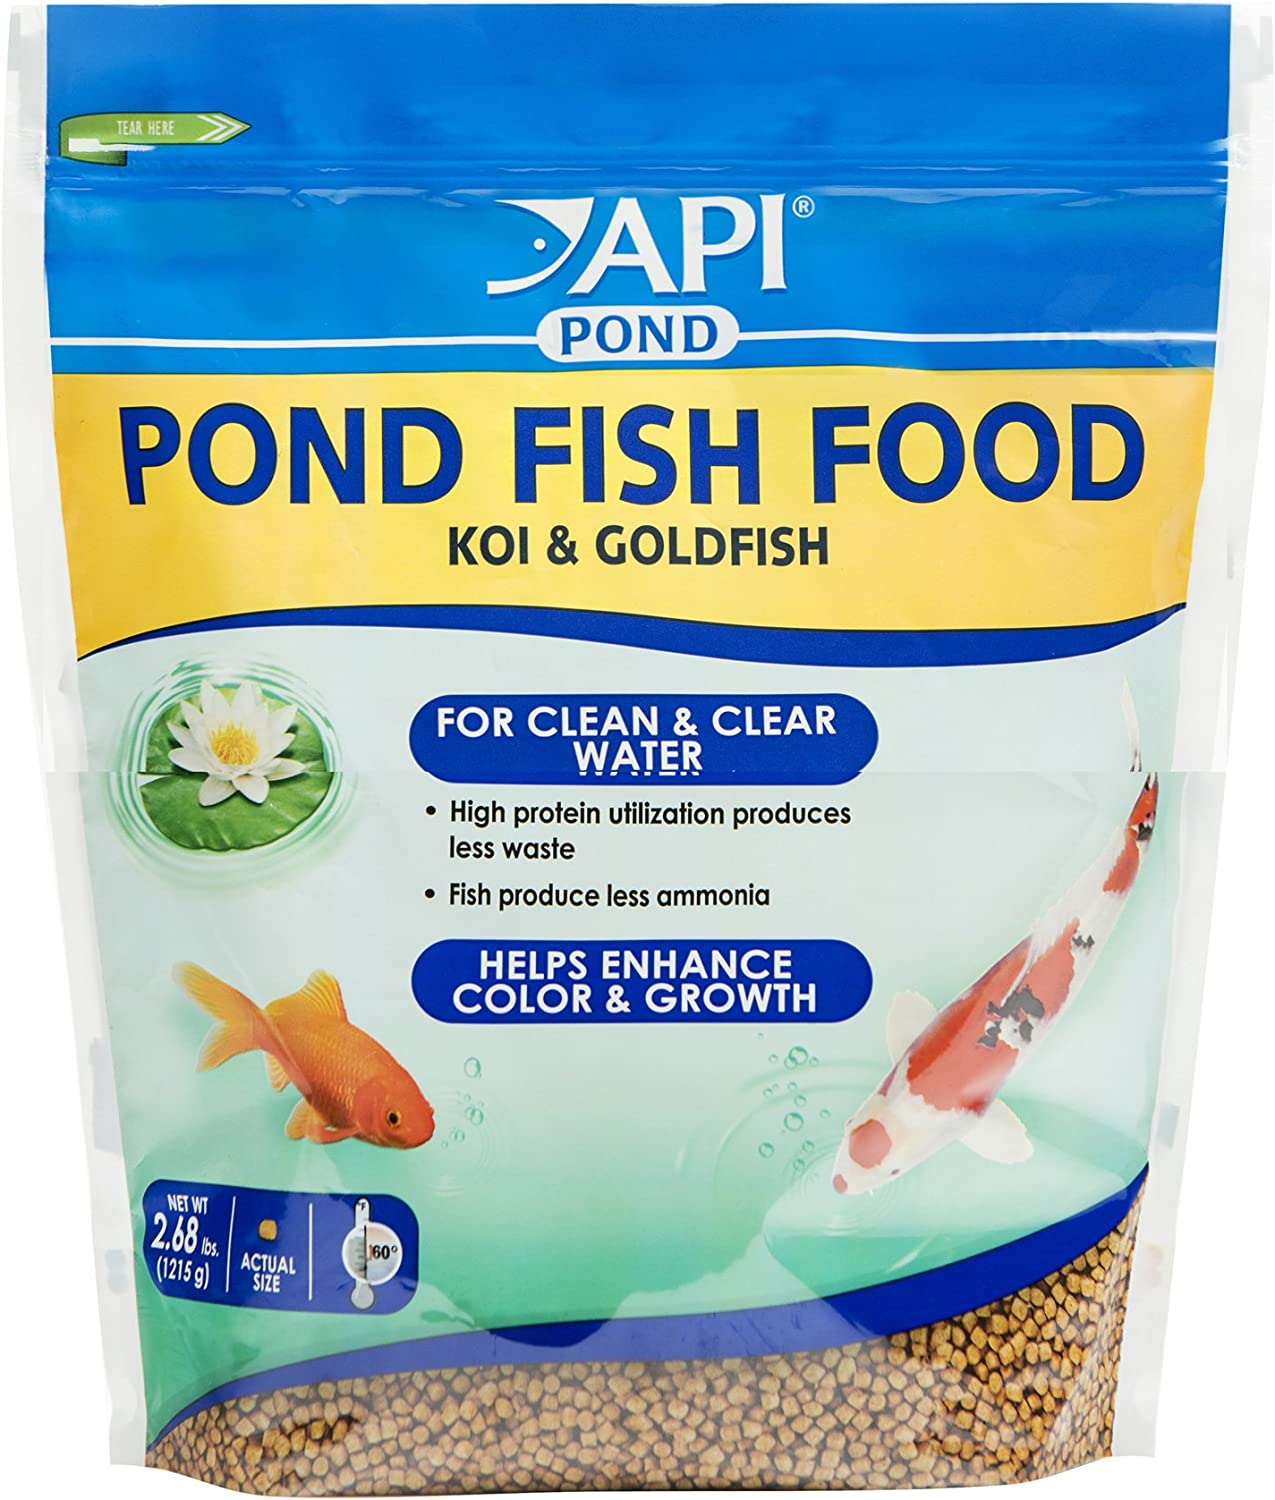 API POND FISH FOOD Pond Fish Food 2.68-Pound Bag